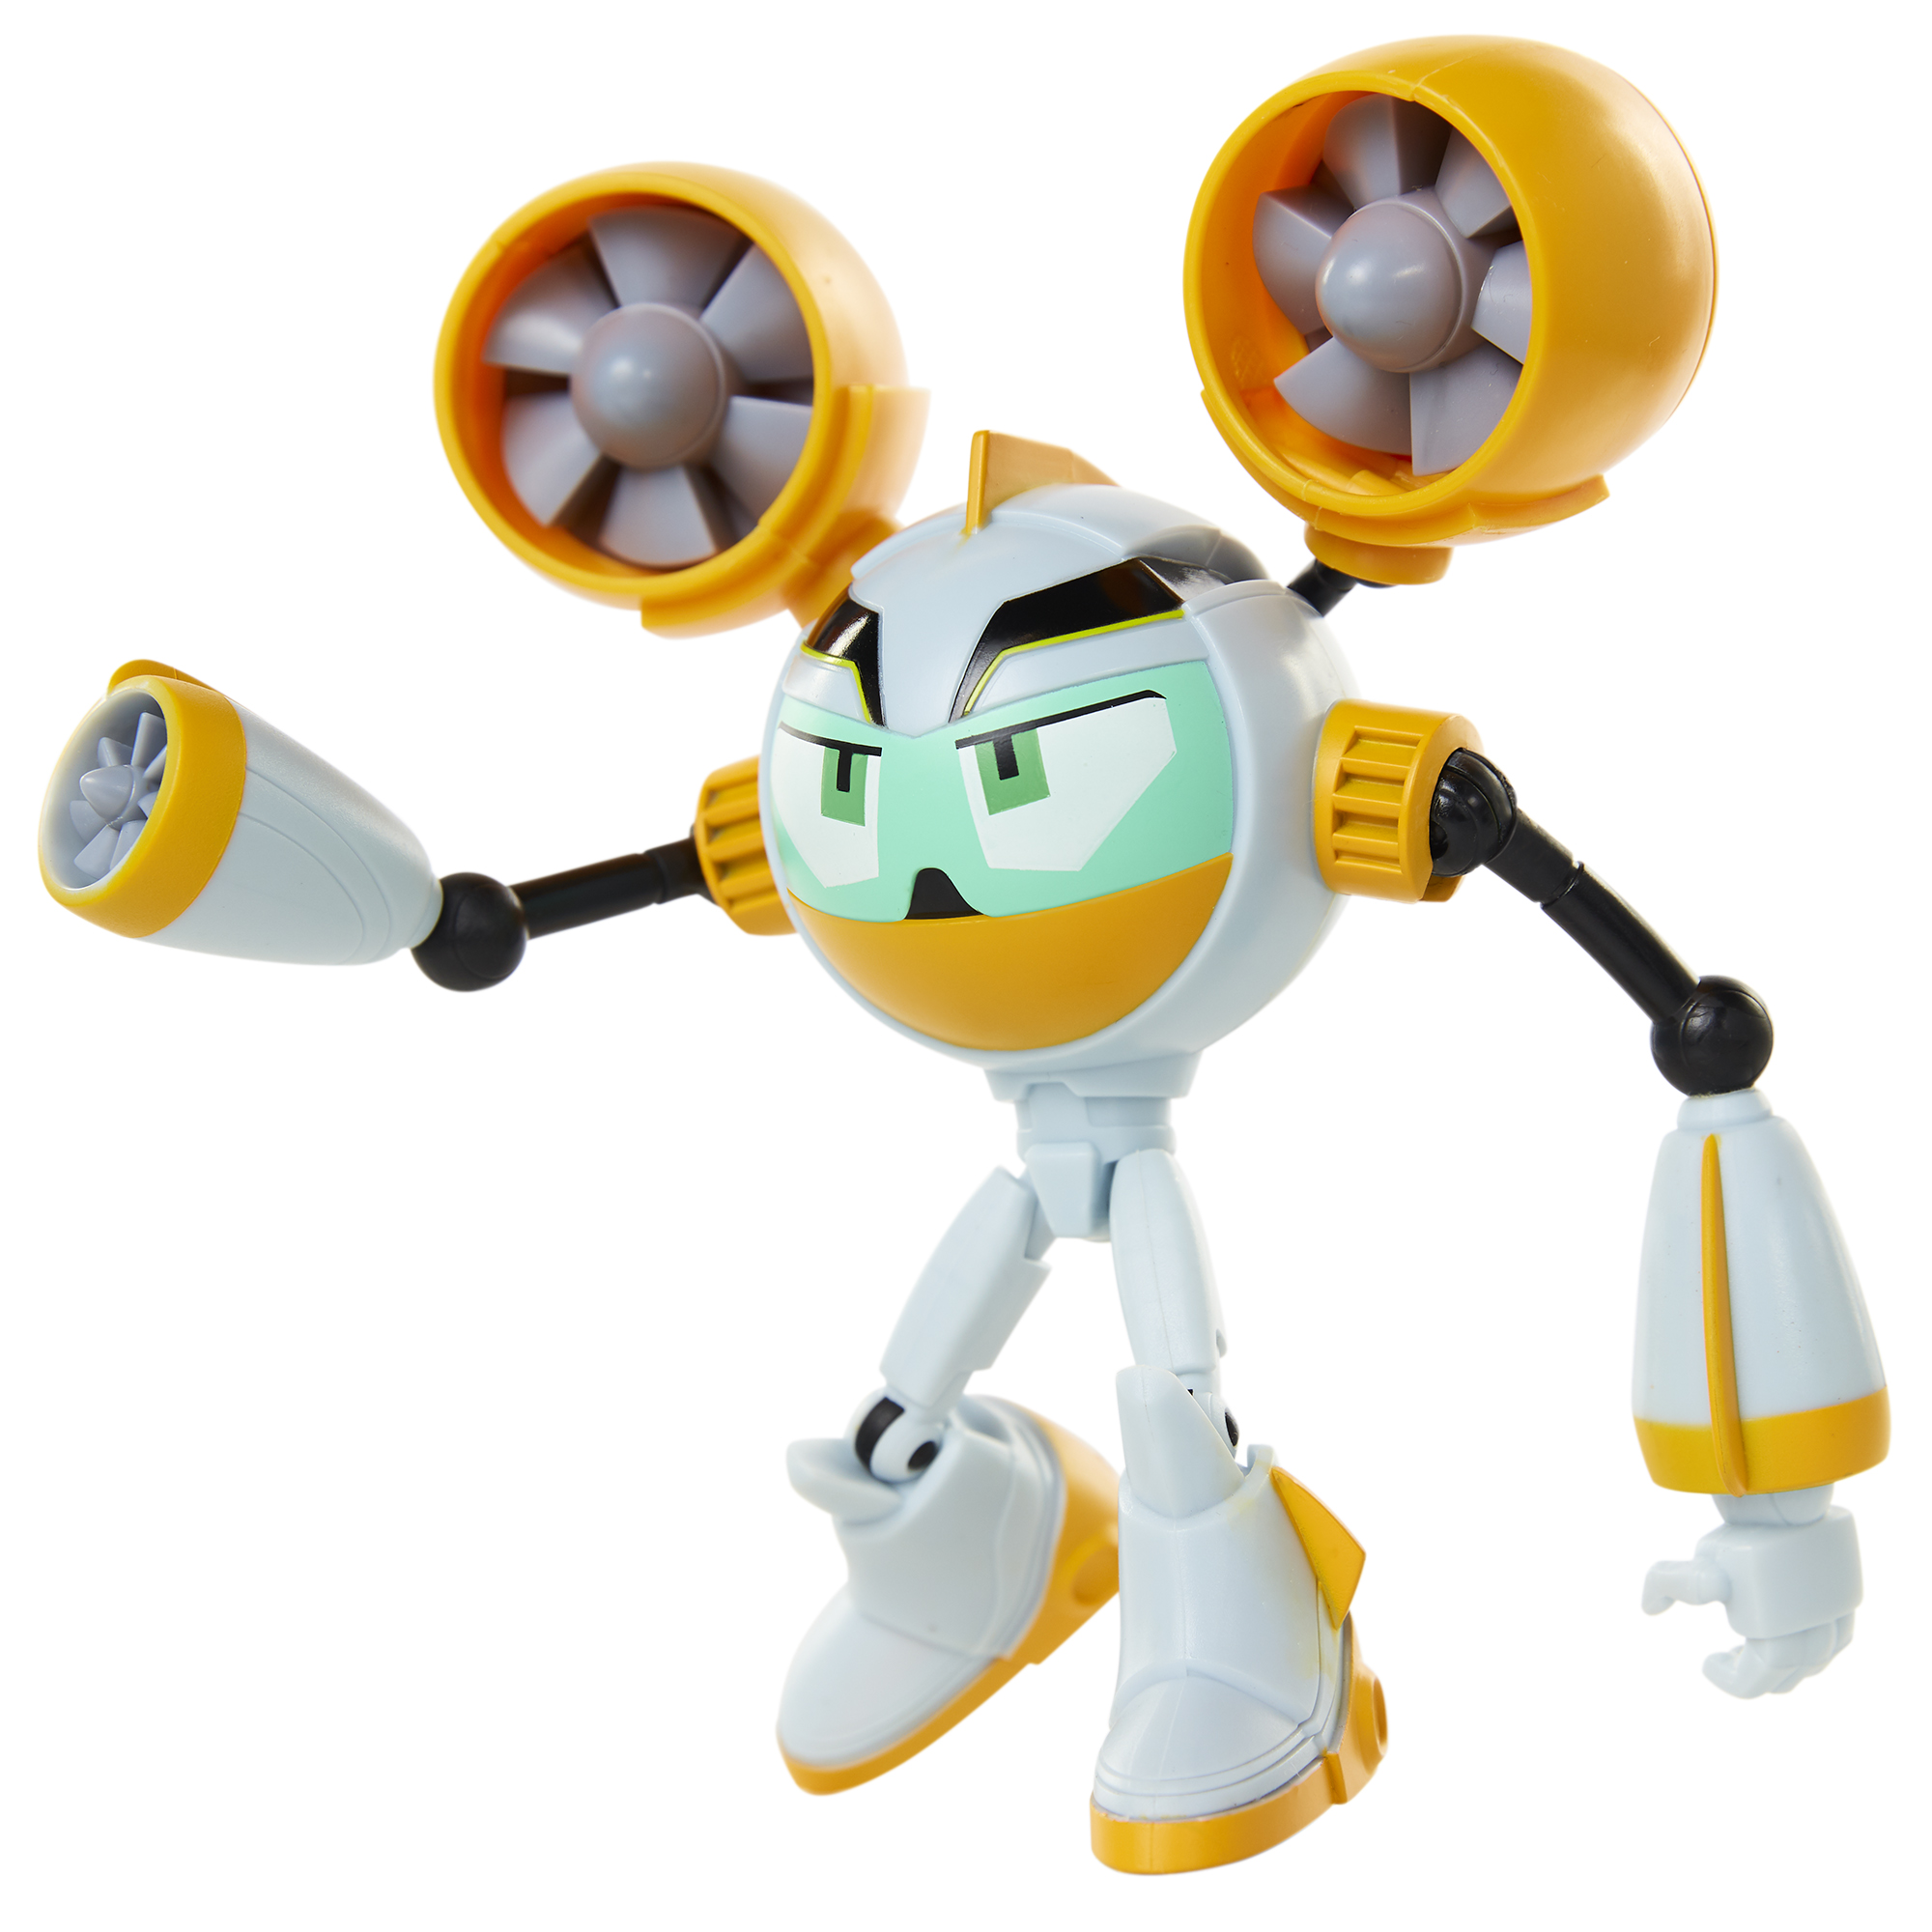 Mega Man 6 Air Man with Cannon Accessory